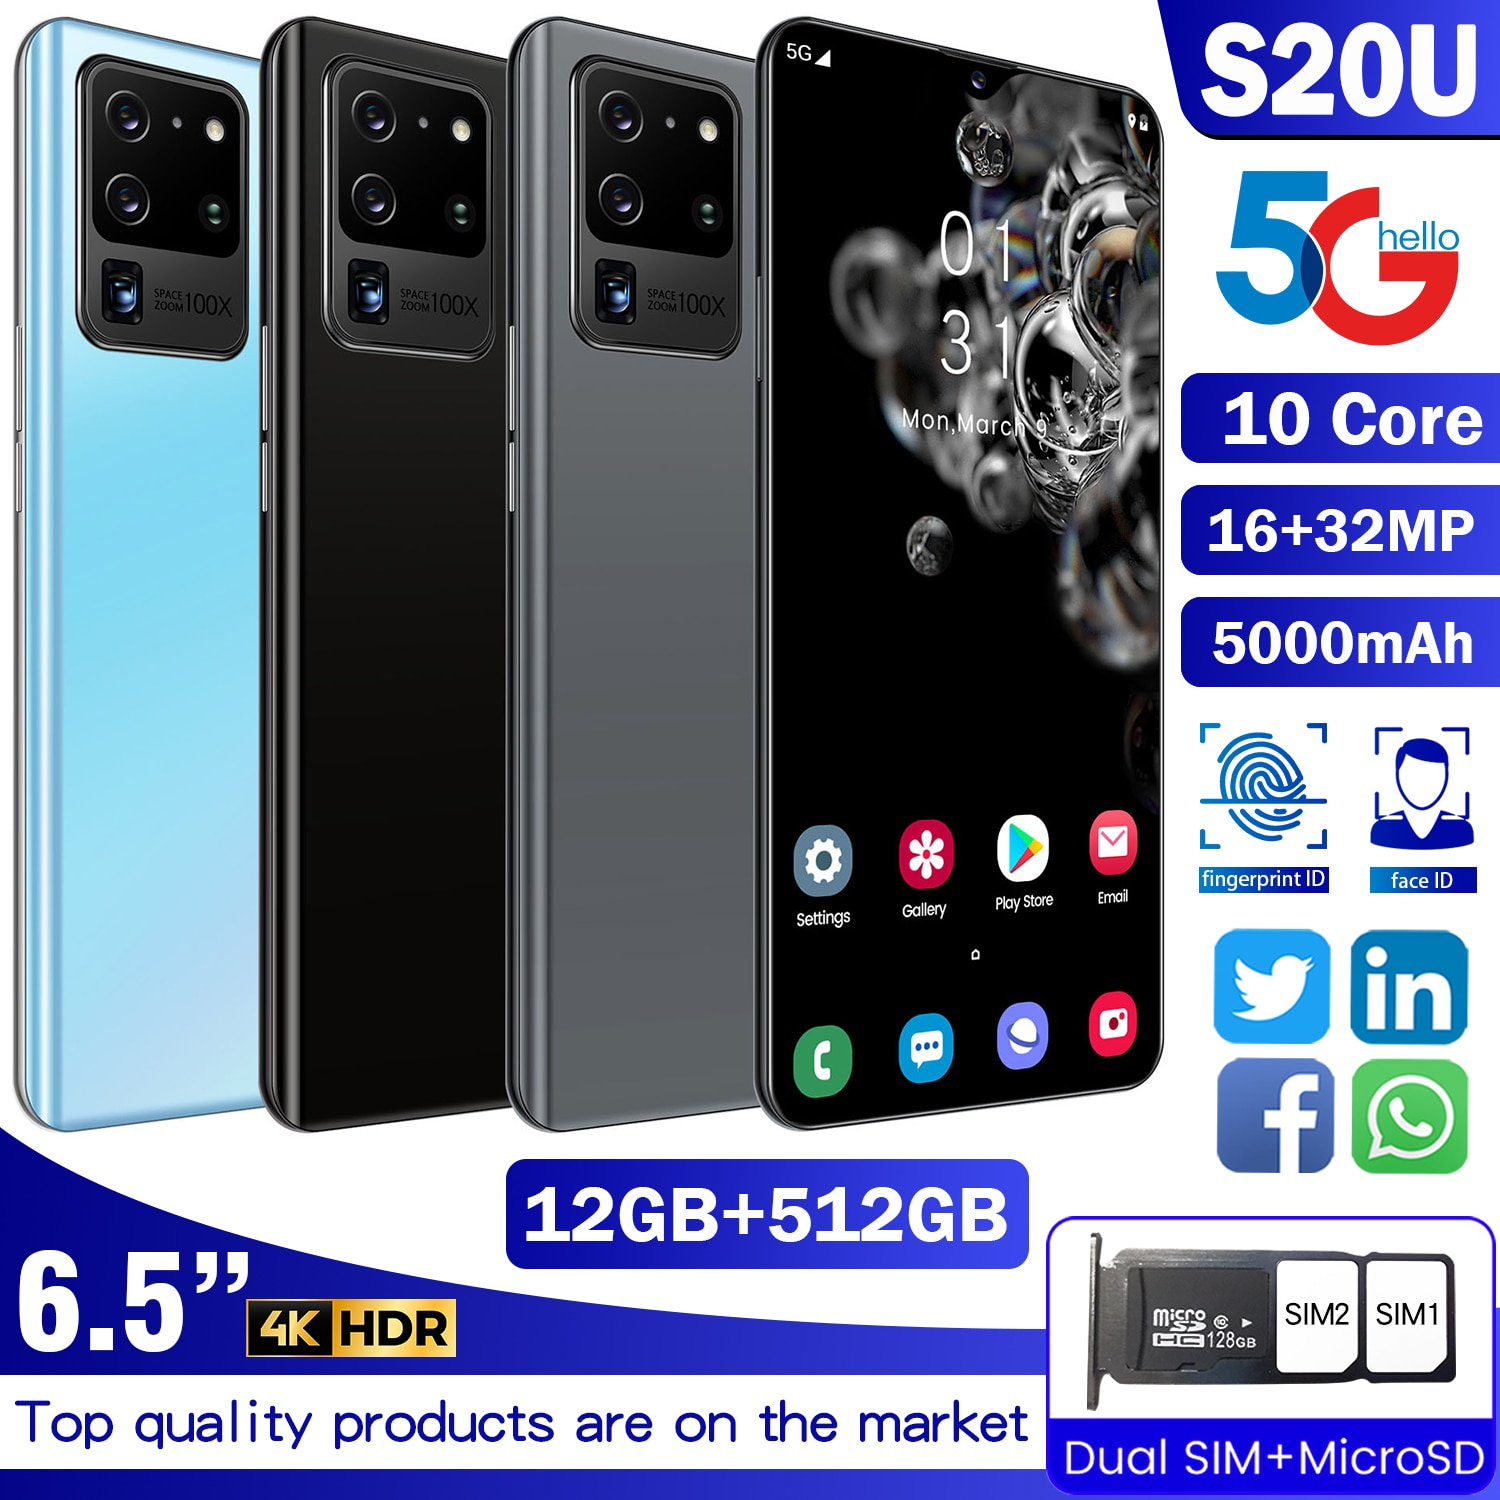 2021 Newest S20U 5G LTE Android Cellphone MTK6889 10-Core Processor 12GB+512GB Smartphone 6.7 inch 4800mAh Battery Mobile Phone